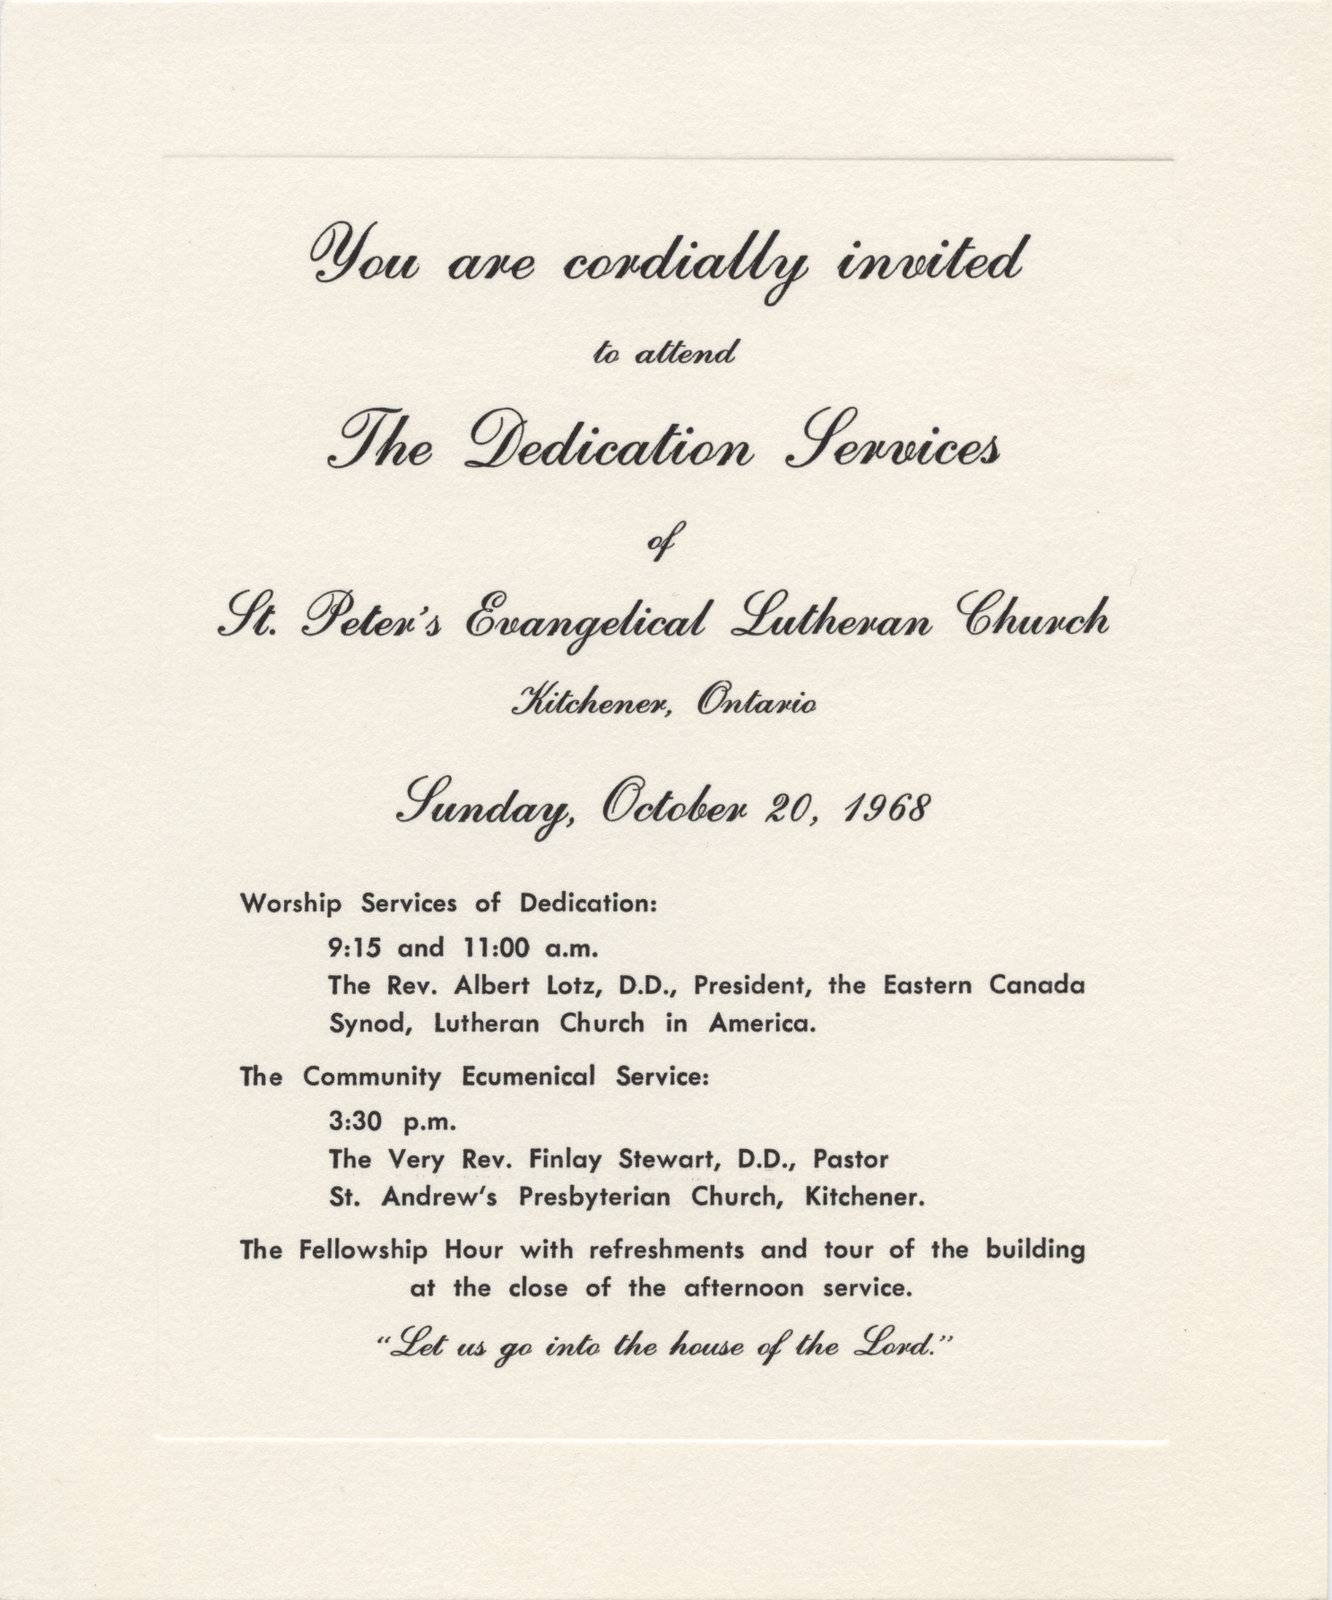 Invitation to the dedication services of St. Peter's Evangelical Lutheran Church, October 1968